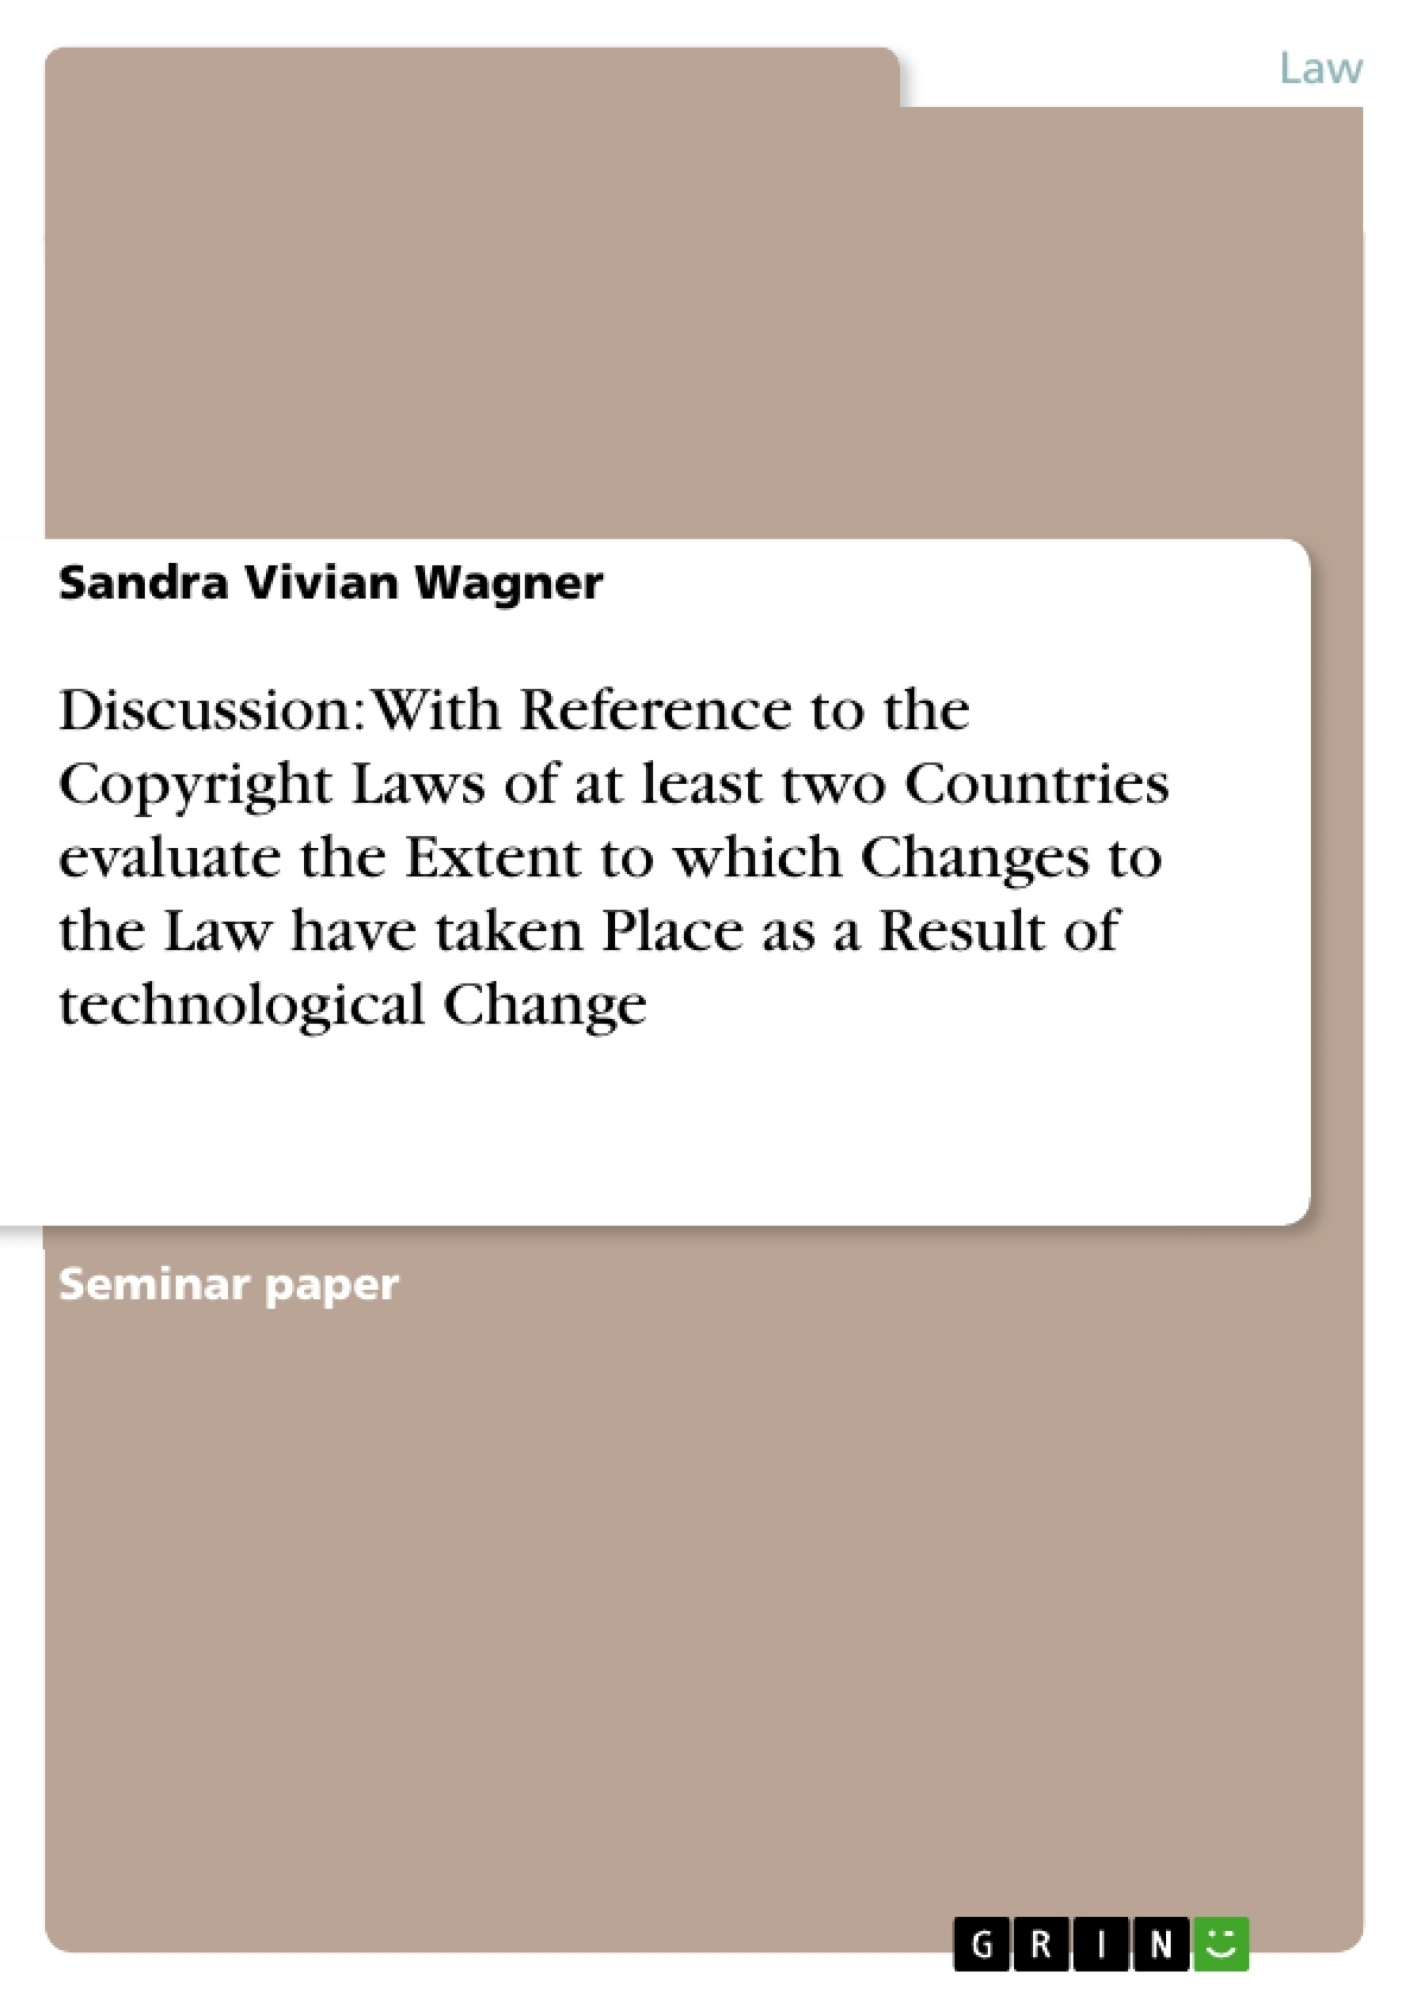 Title: Discussion: With Reference to the Copyright Laws of at least two Countries evaluate the Extent to which Changes to the Law have taken Place as a Result of technological Change